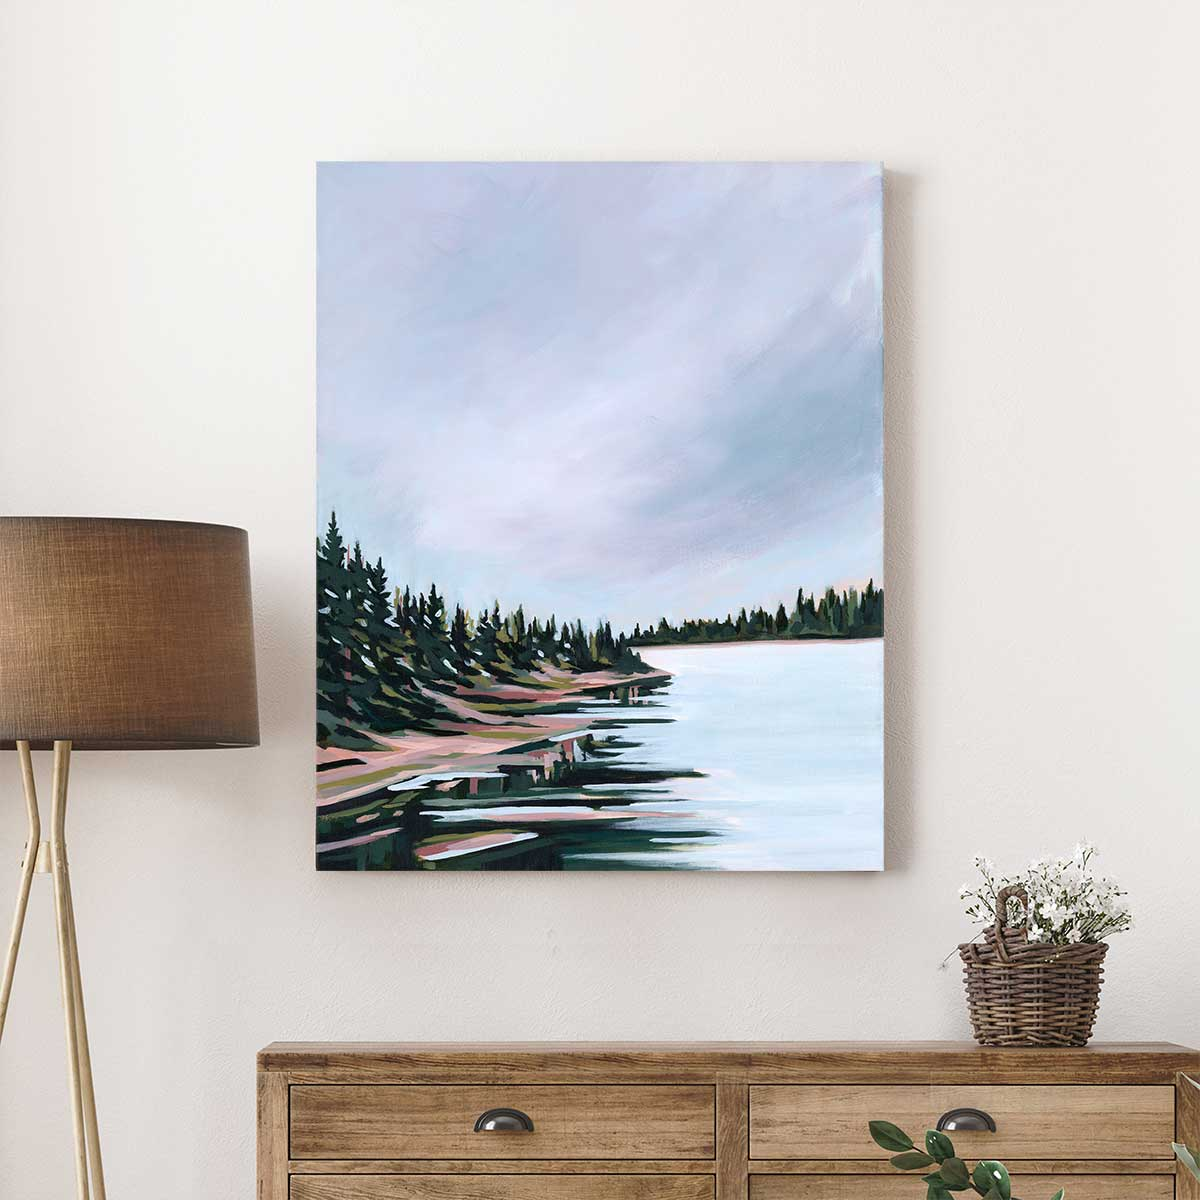 Jackson Lake - Canvas Print by Mallery Jane | Art Bloom Canvas Art